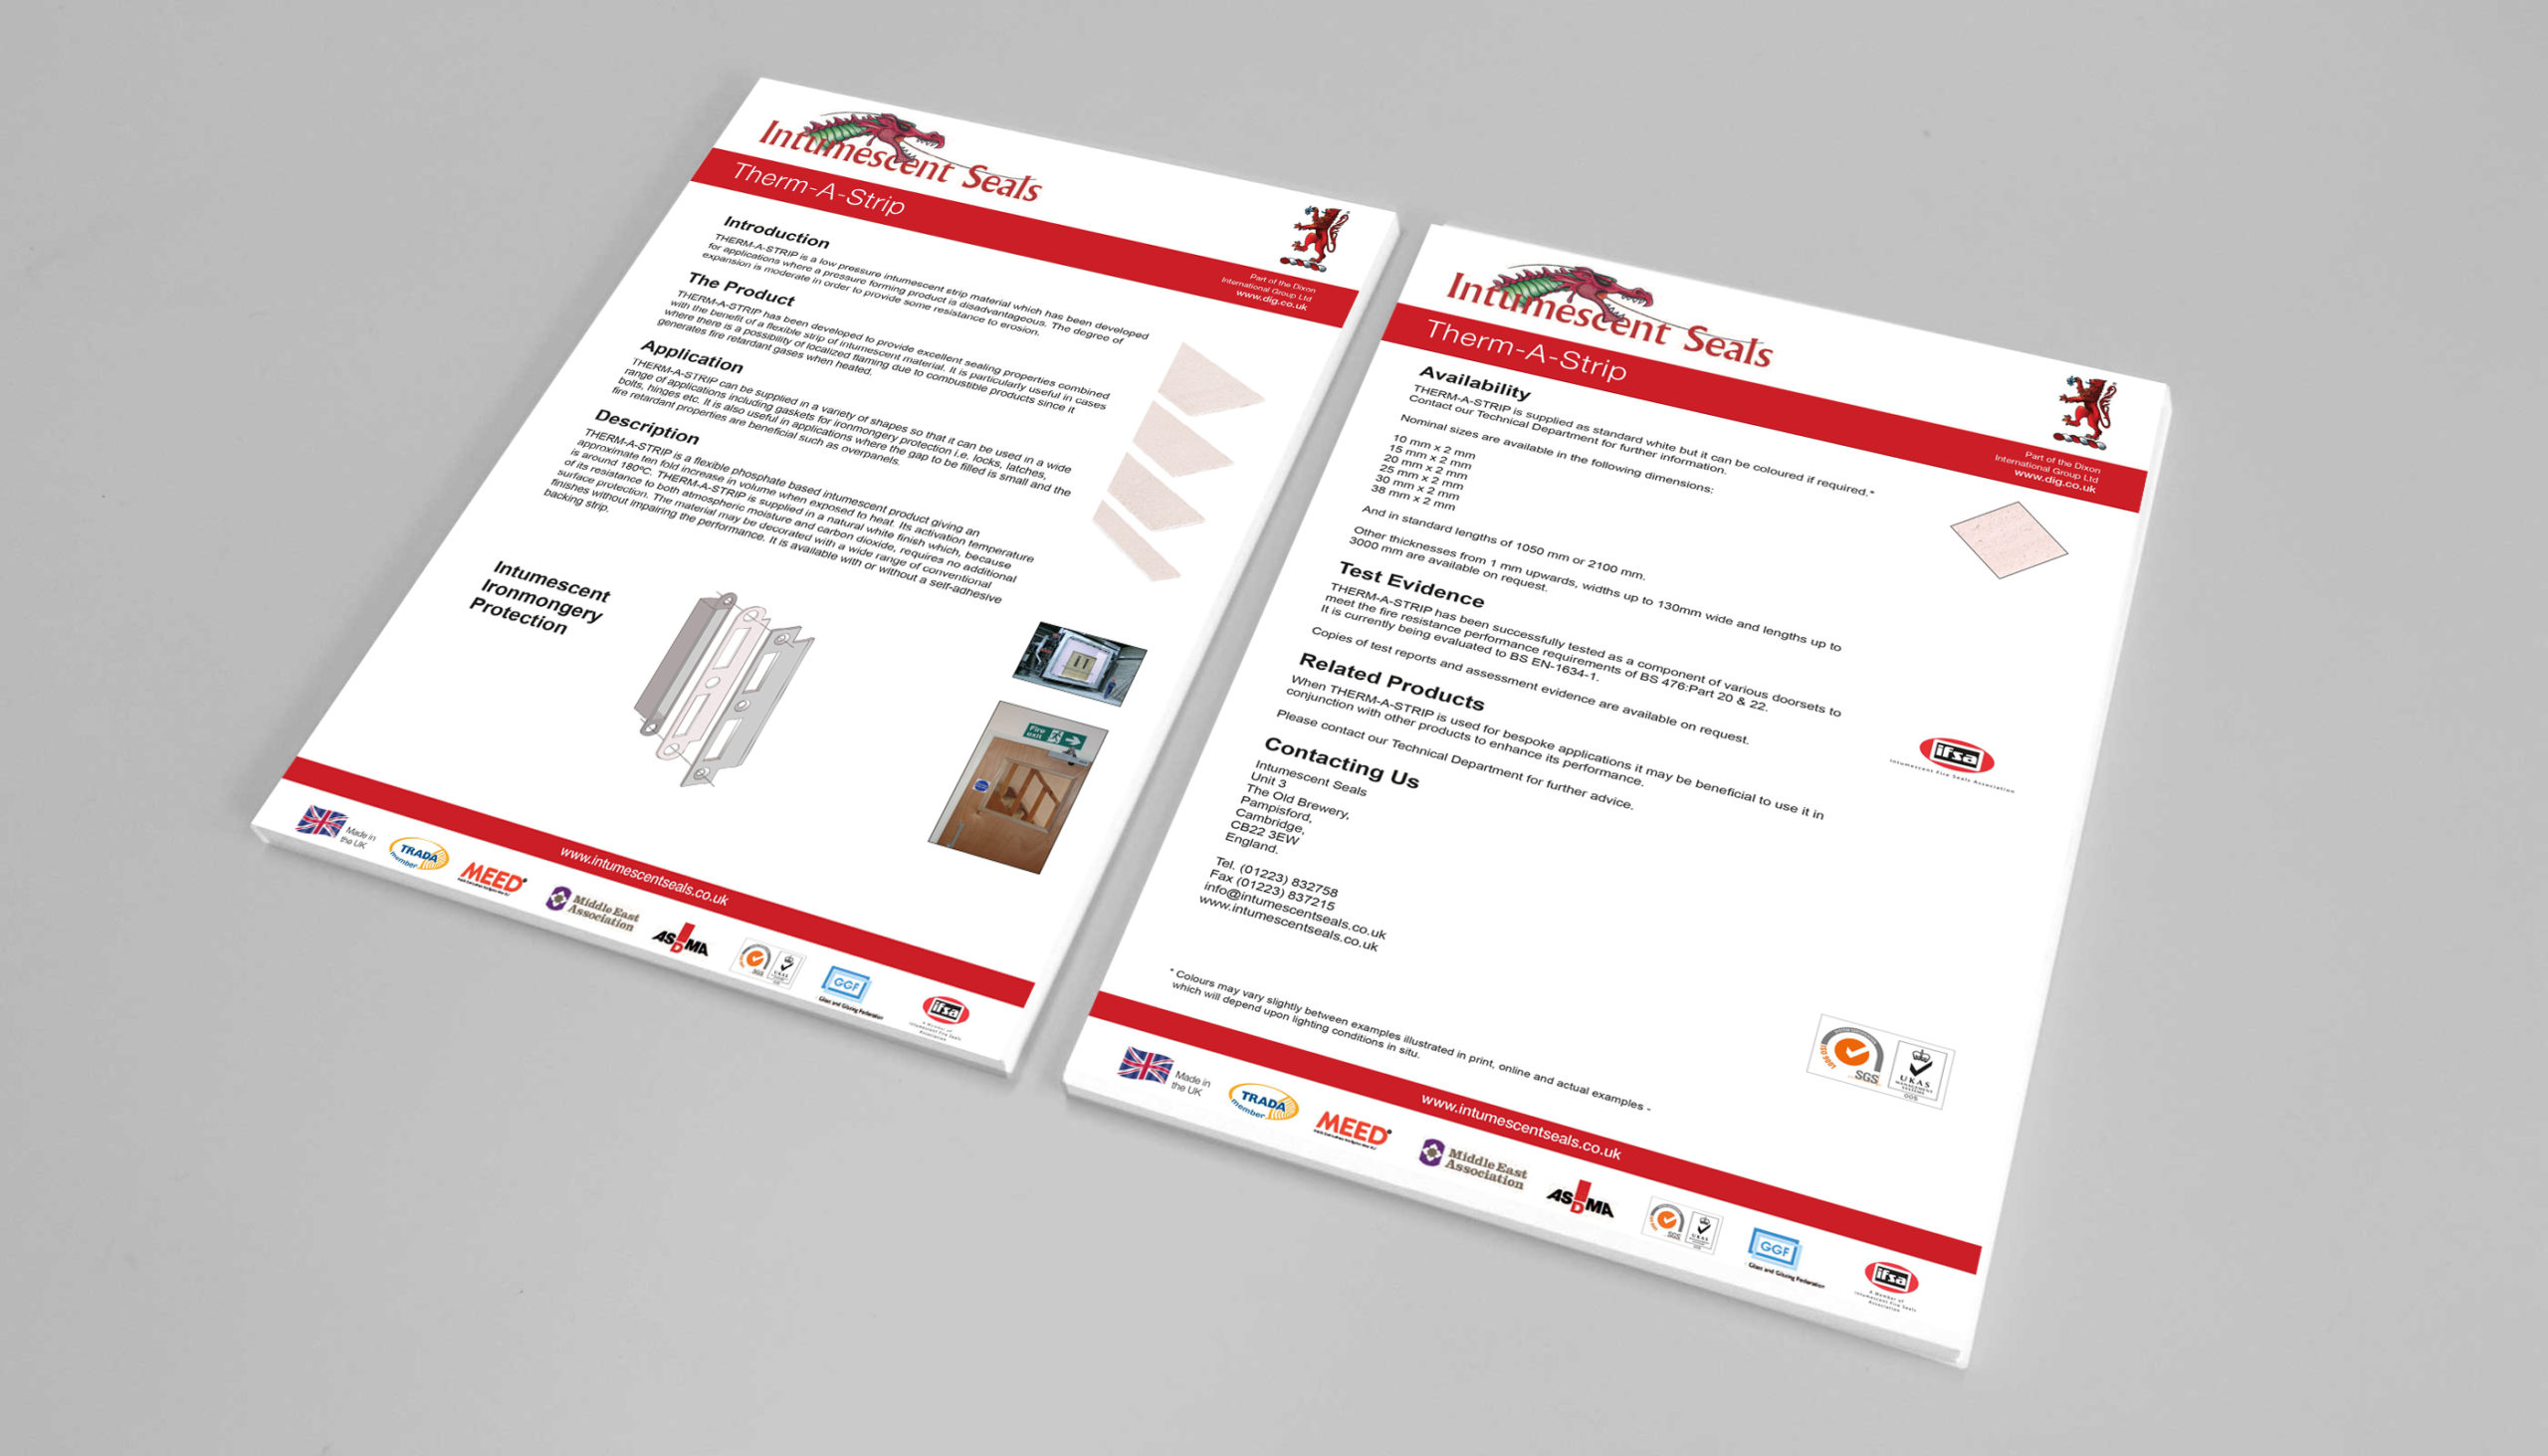 Intumescent Seals Technical News Example Image